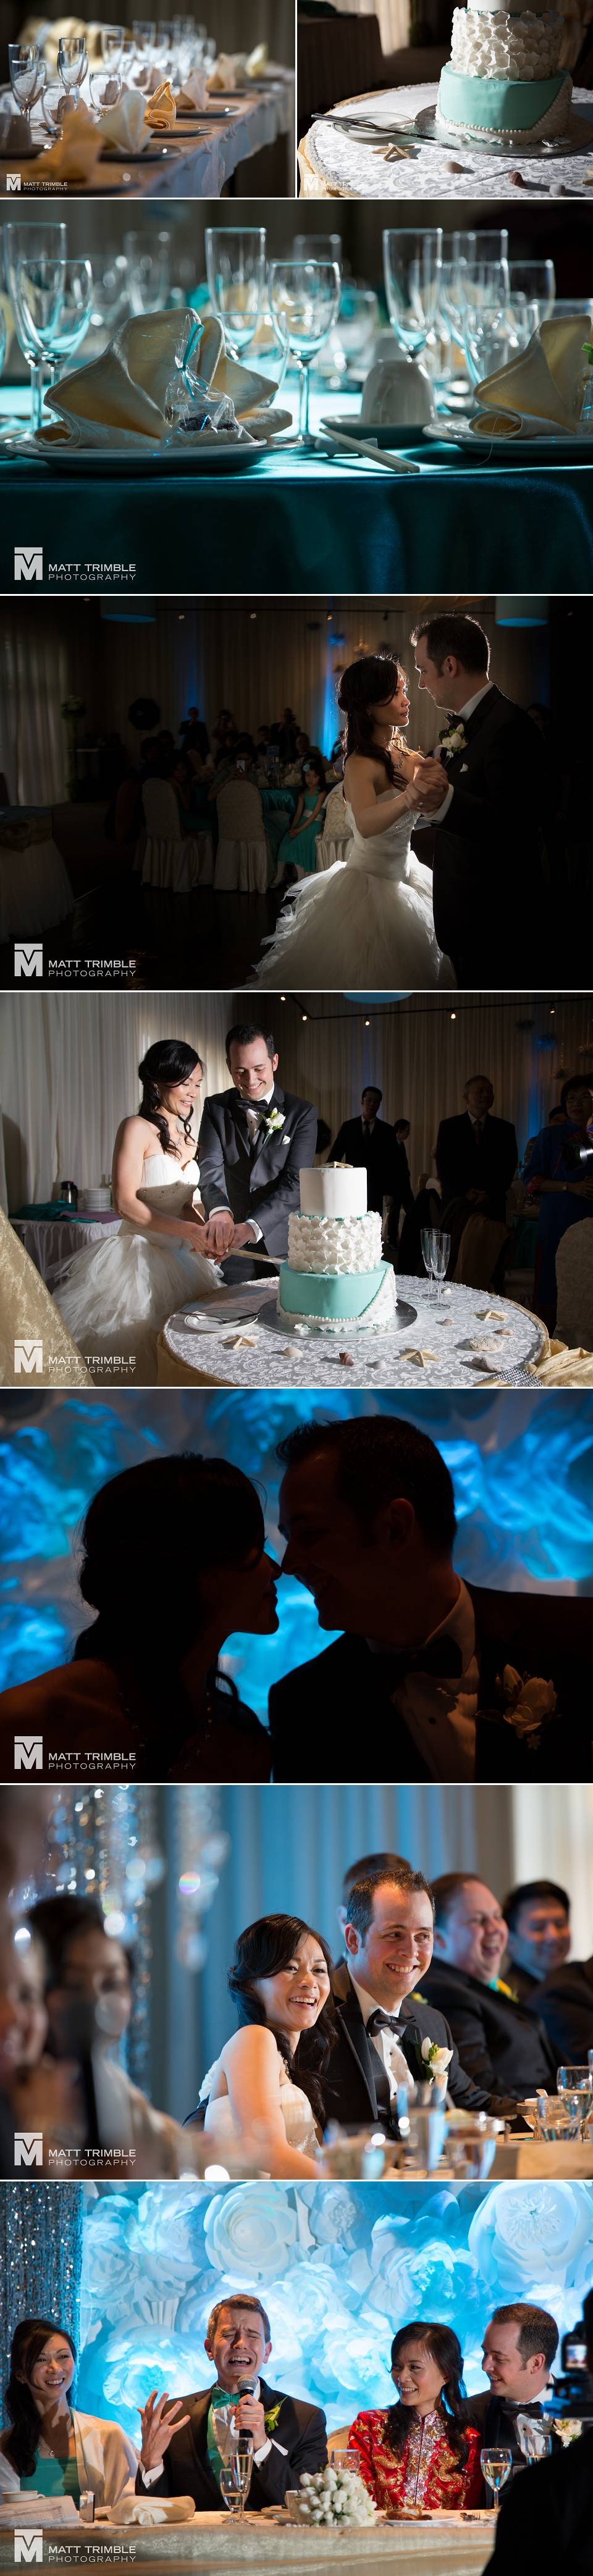 wedding reception and shangri la